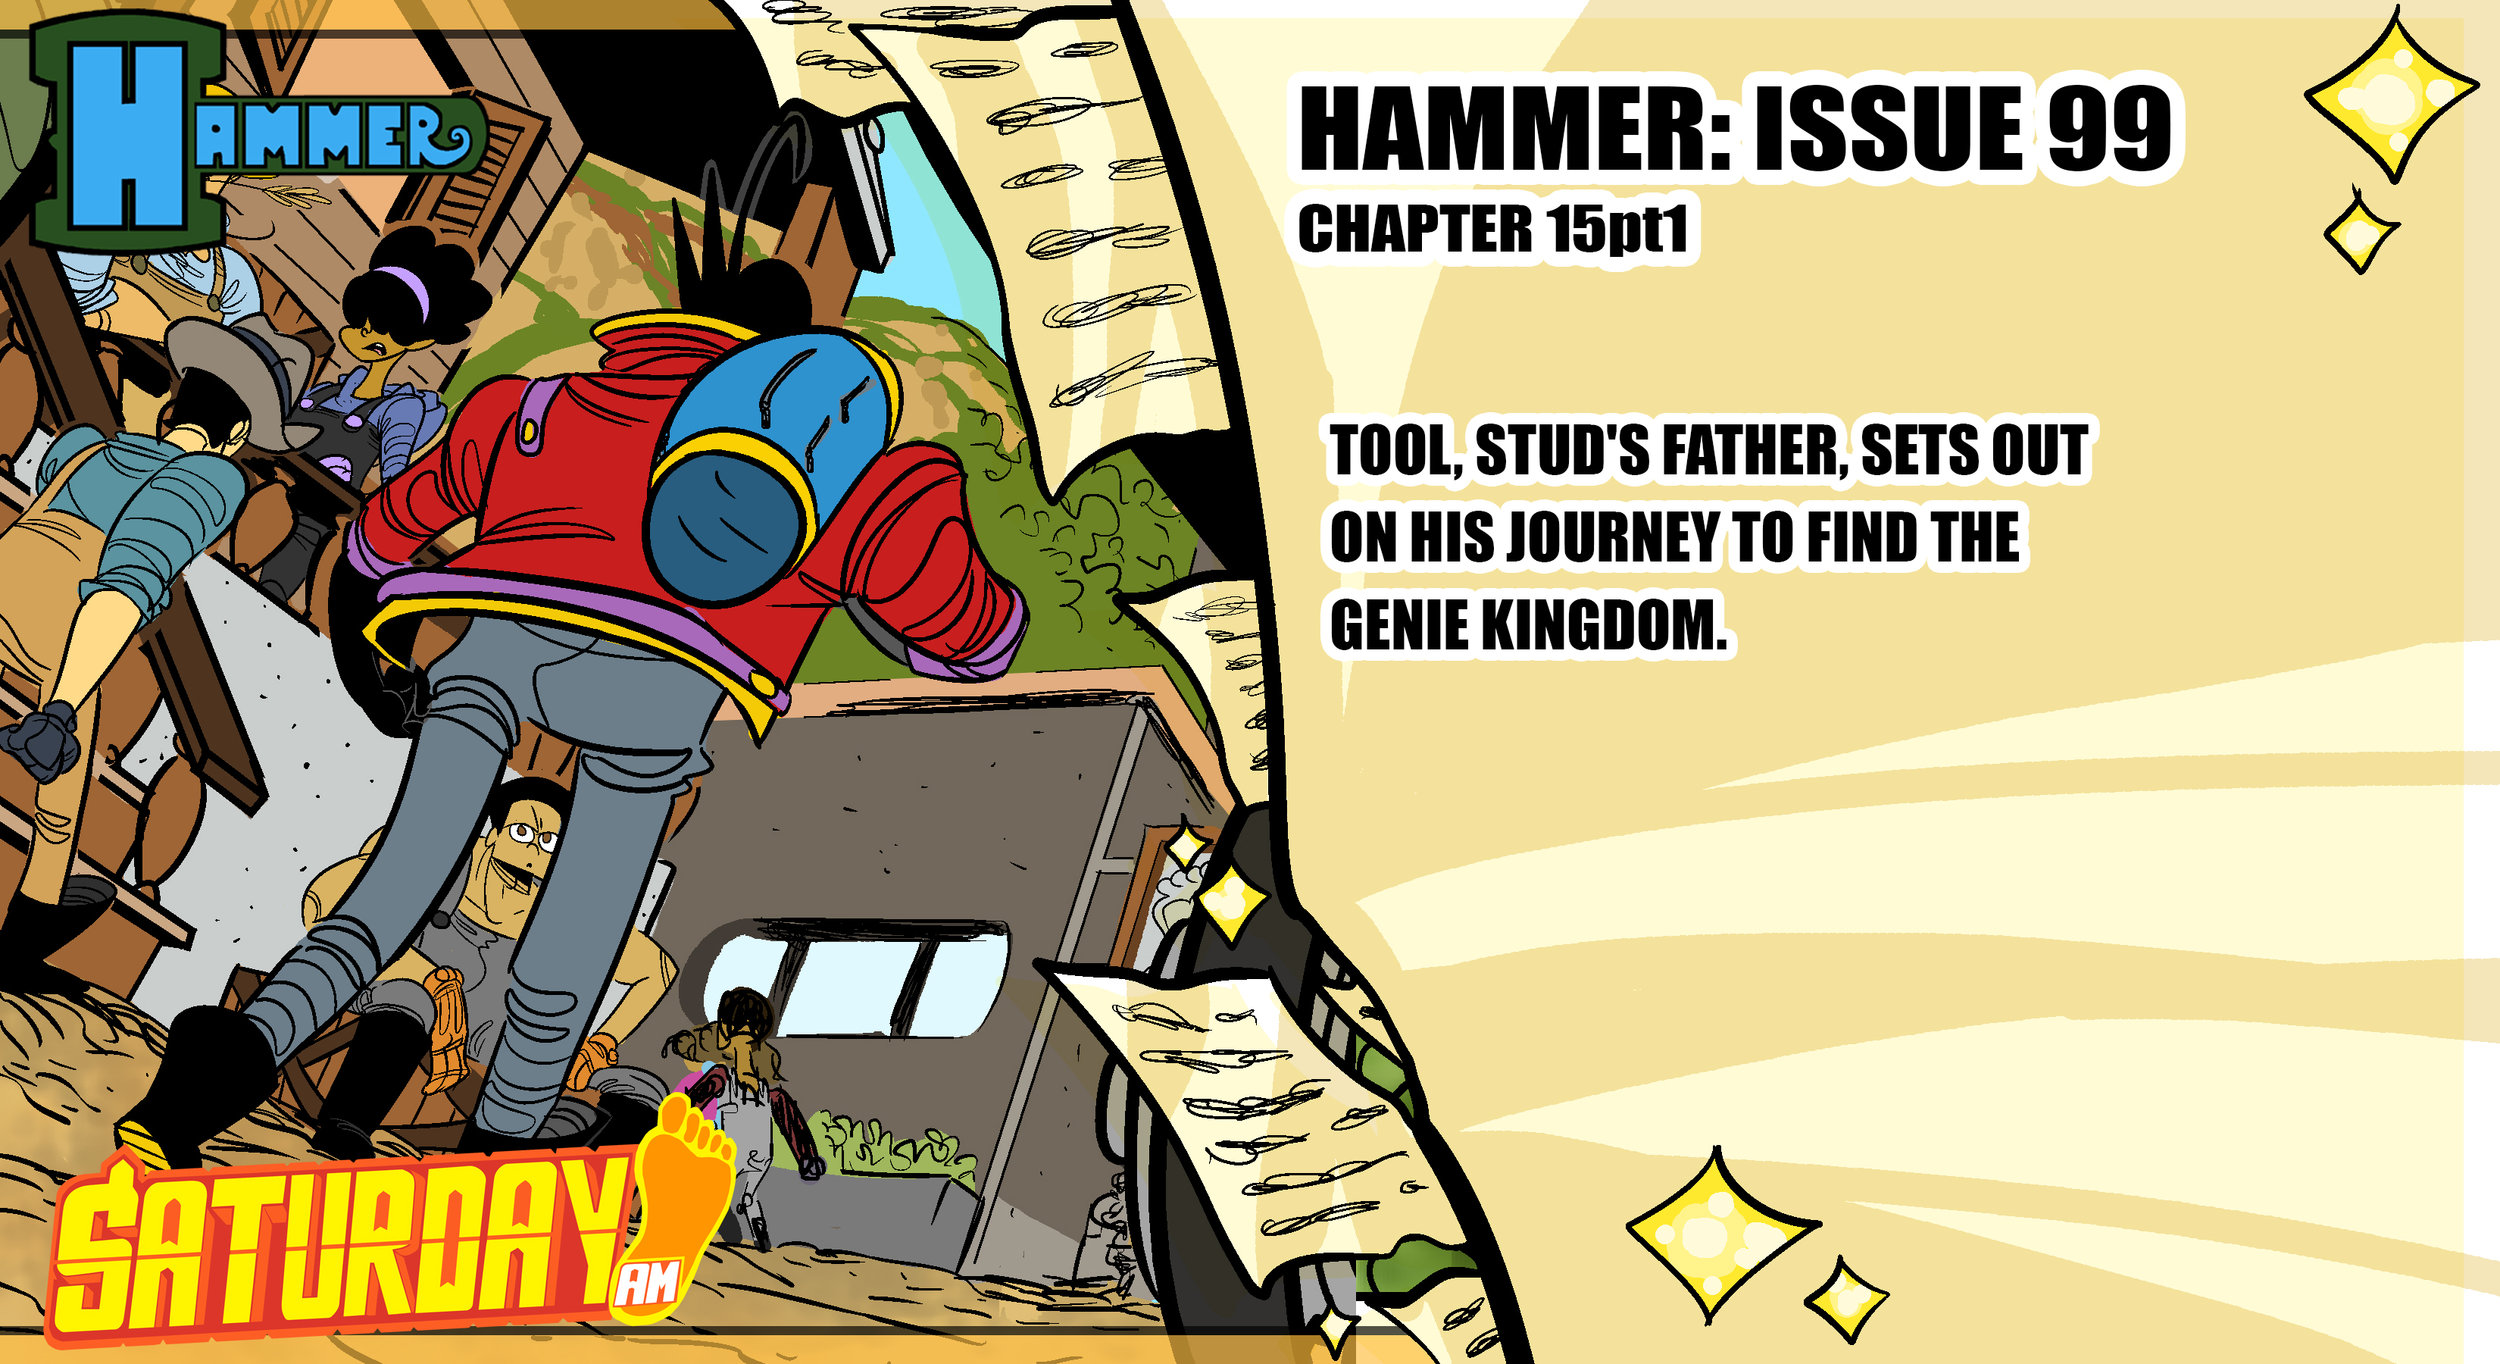 HAMMER WEBSITE_LATEST ISSUE GRAPHIC #99.jpg